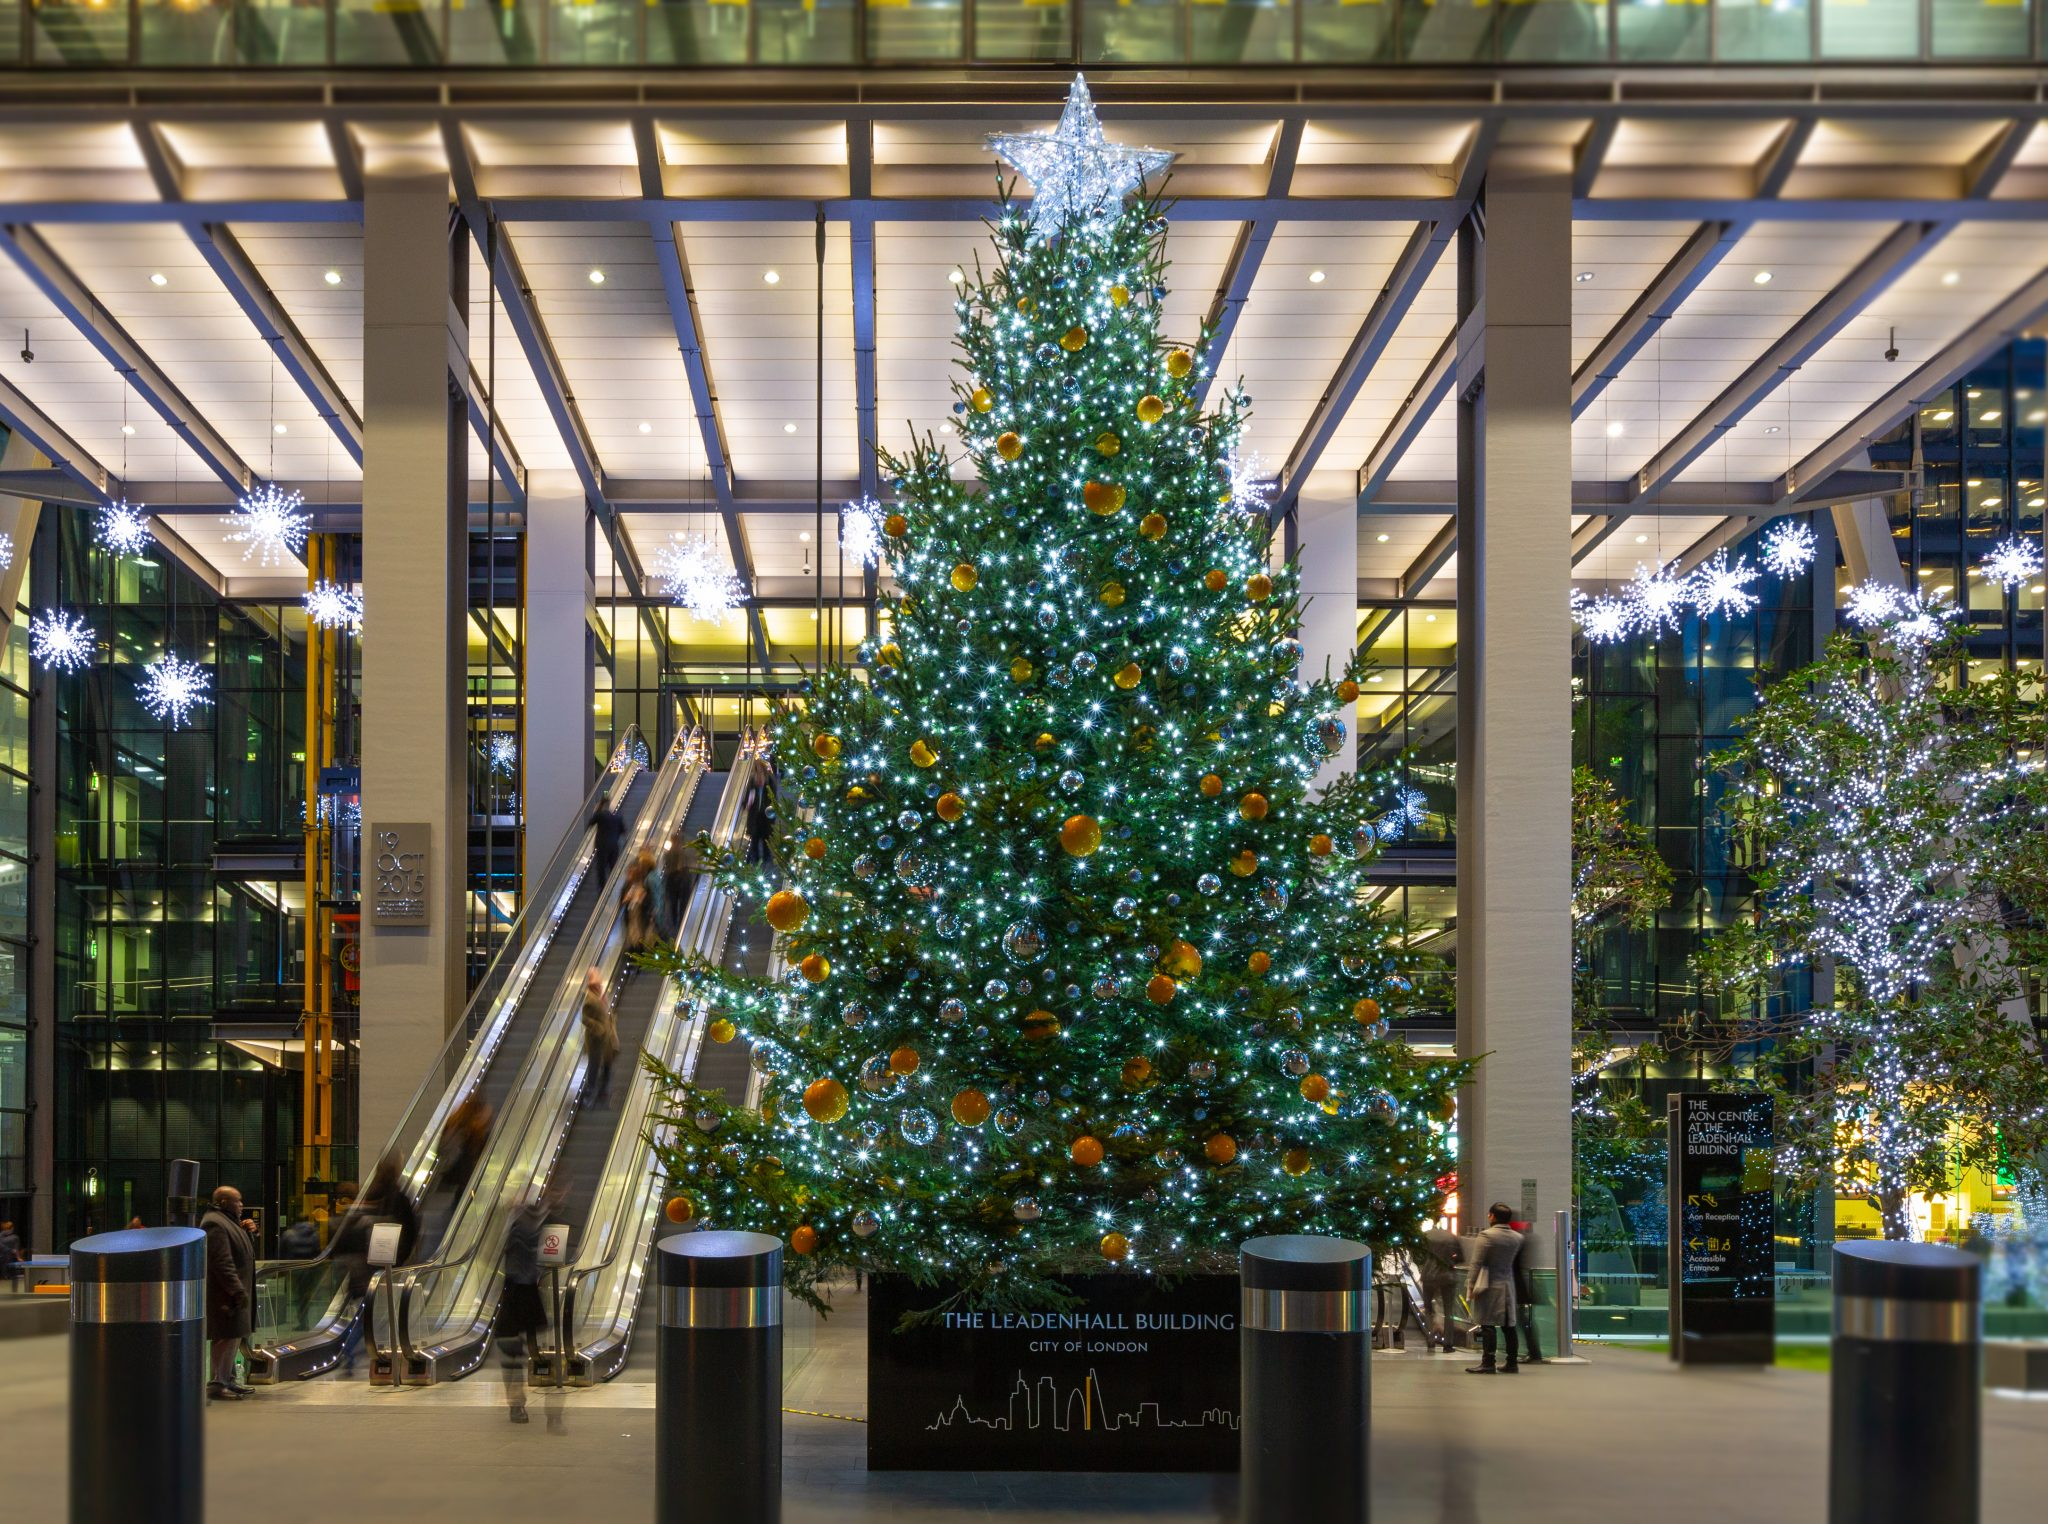 Large fresh commercial Christmas tree at the Leadenhall building in the city of London